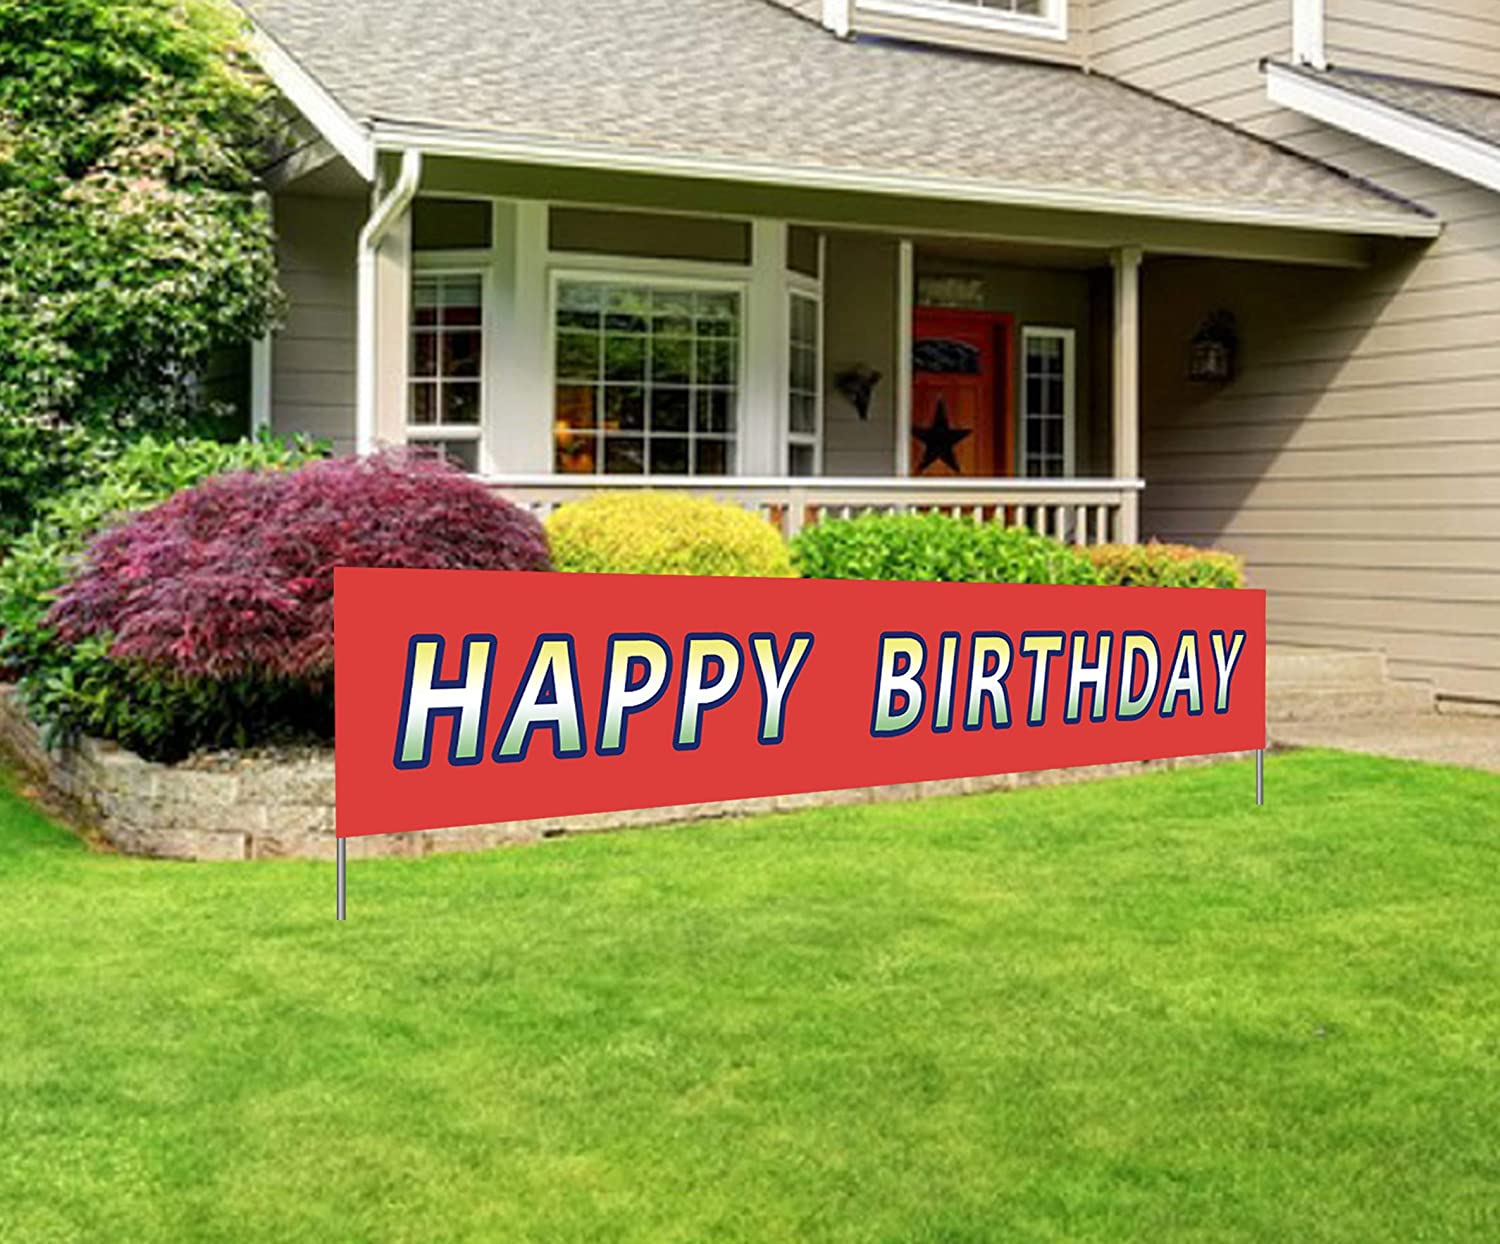 Large Happy Birthday Banner | Giant Bday Party Sign | Huge Birthday Outdoor Decoration